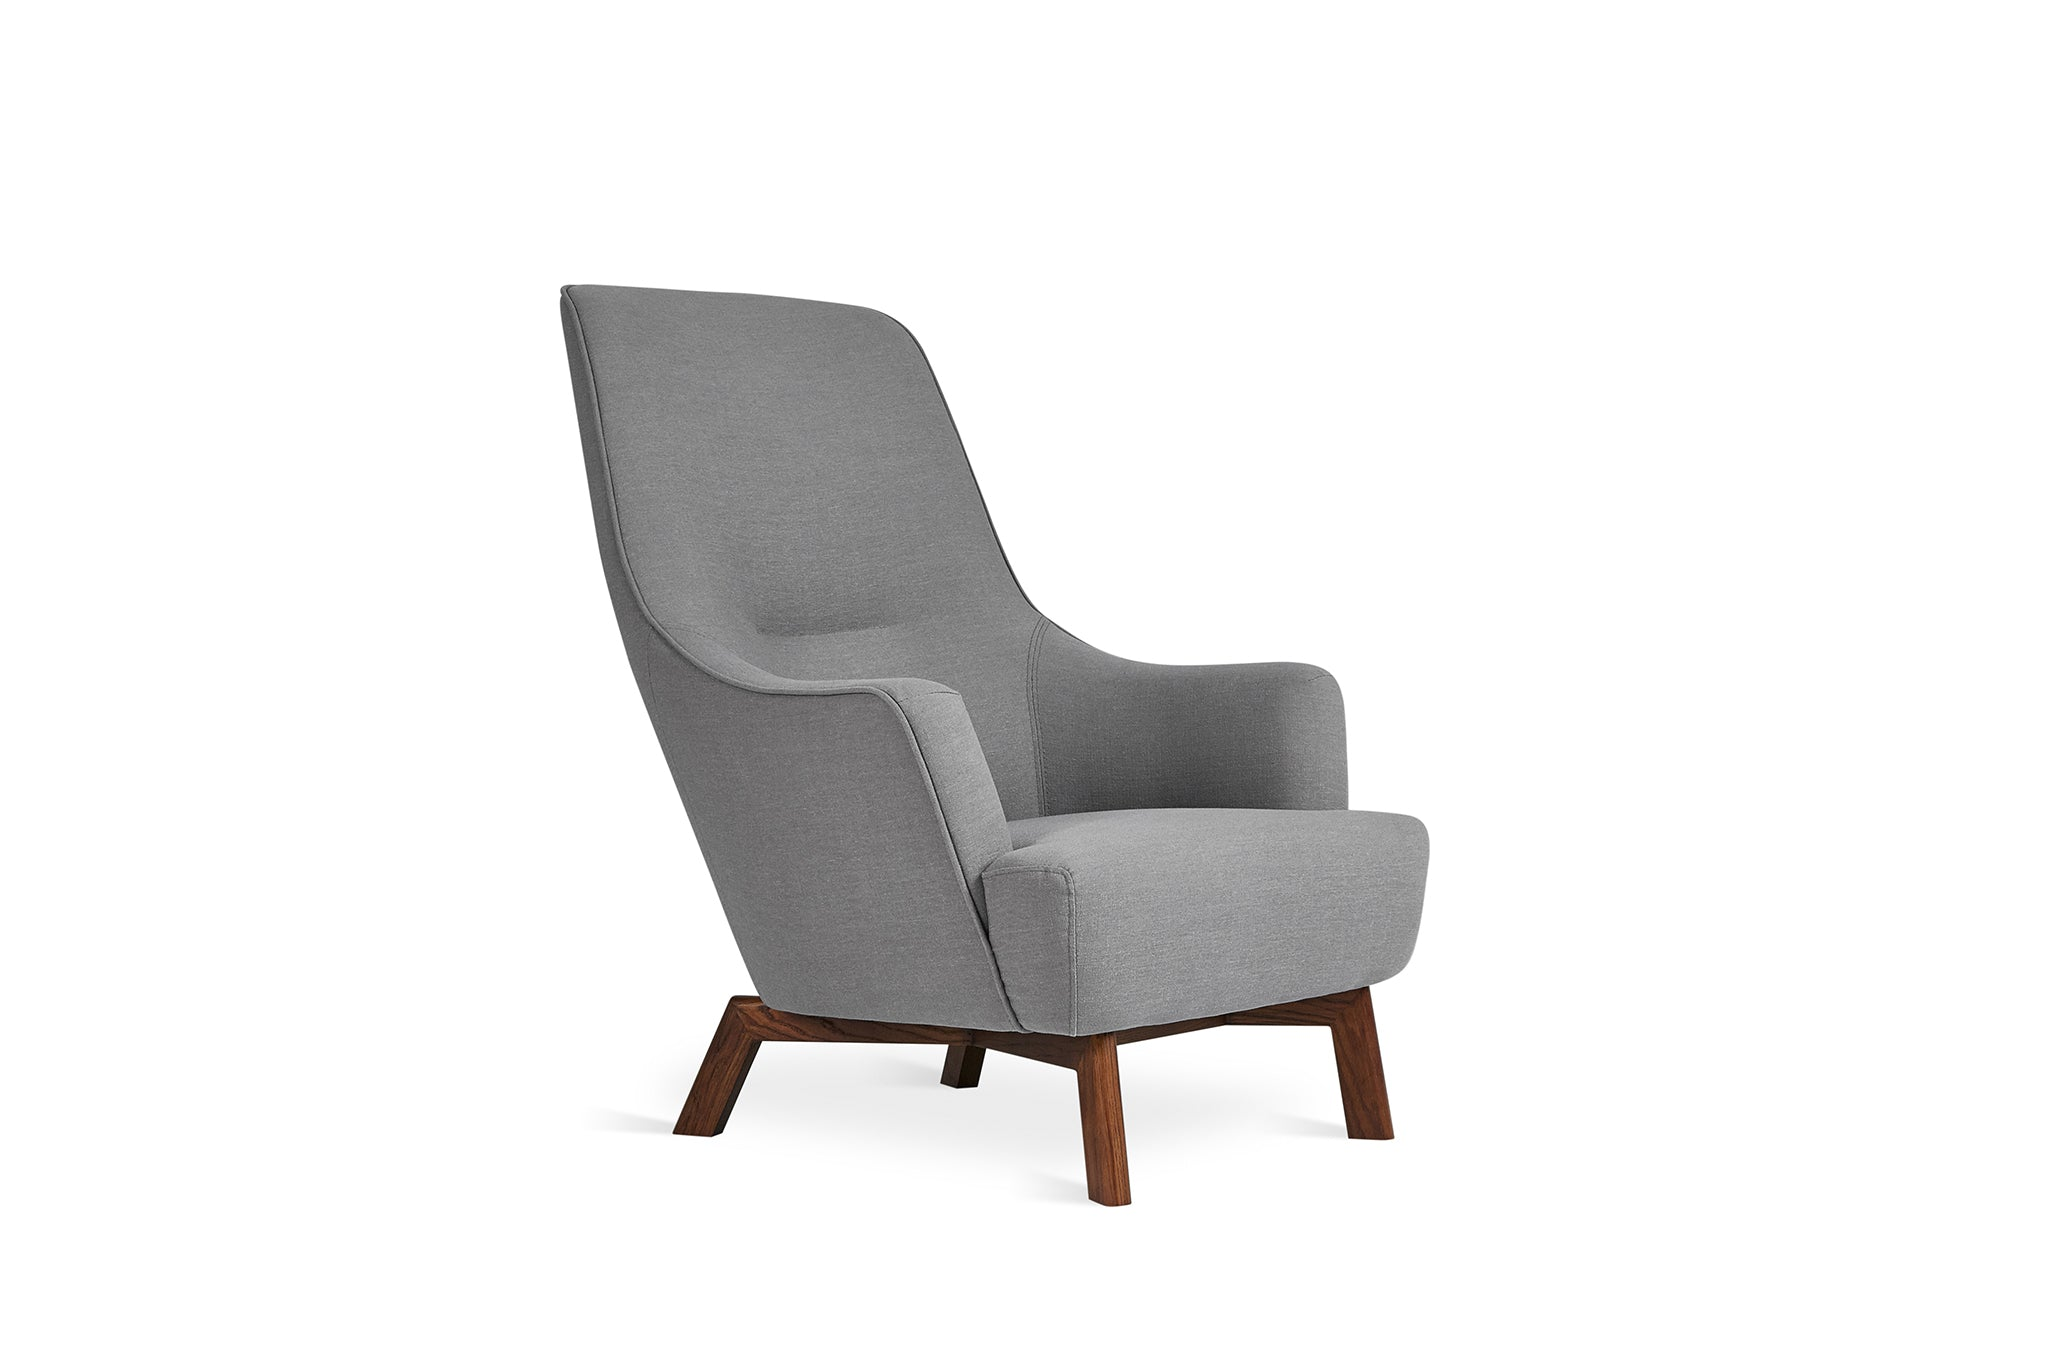 Sensational Hilary Chair From The Source Pabps2019 Chair Design Images Pabps2019Com